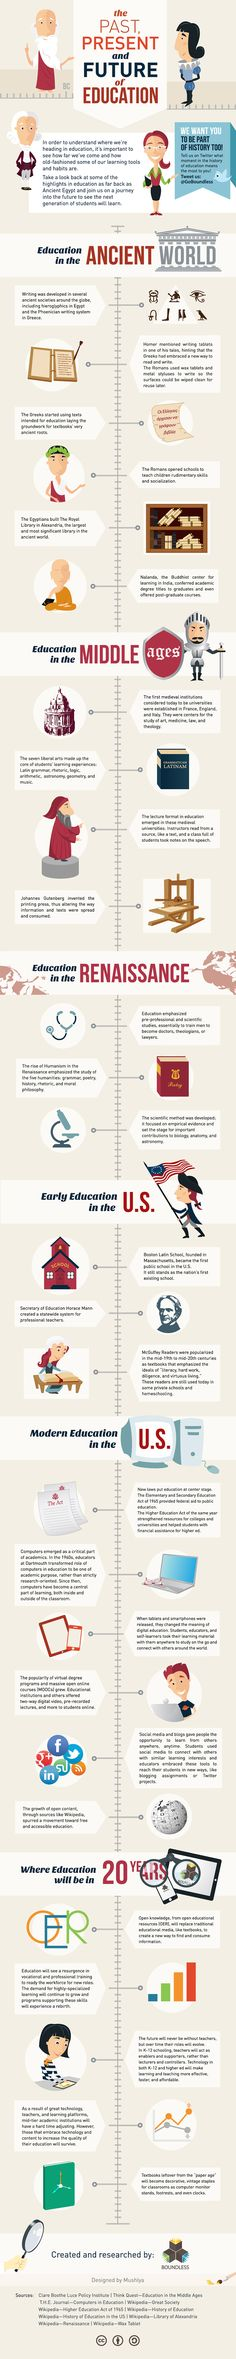 Infographic: The History of Education